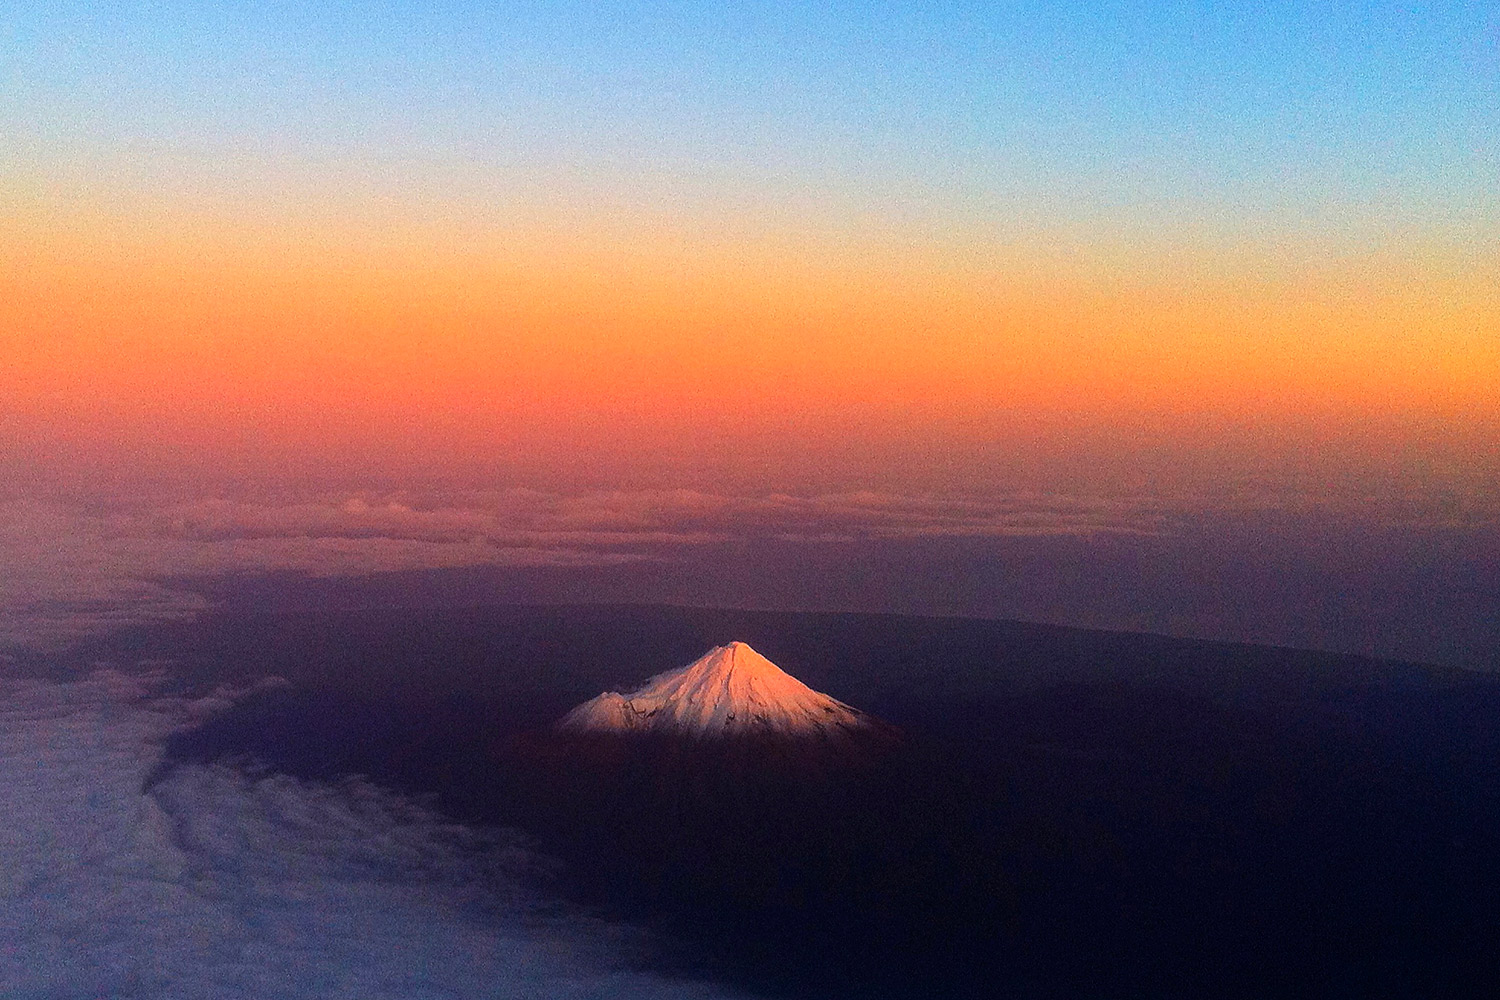 The ash cloud from the Chilean volcano has drifted across the Pacific, giving New Zealand's Mount Taranaki, above, a warm glow, June 12, 2011.